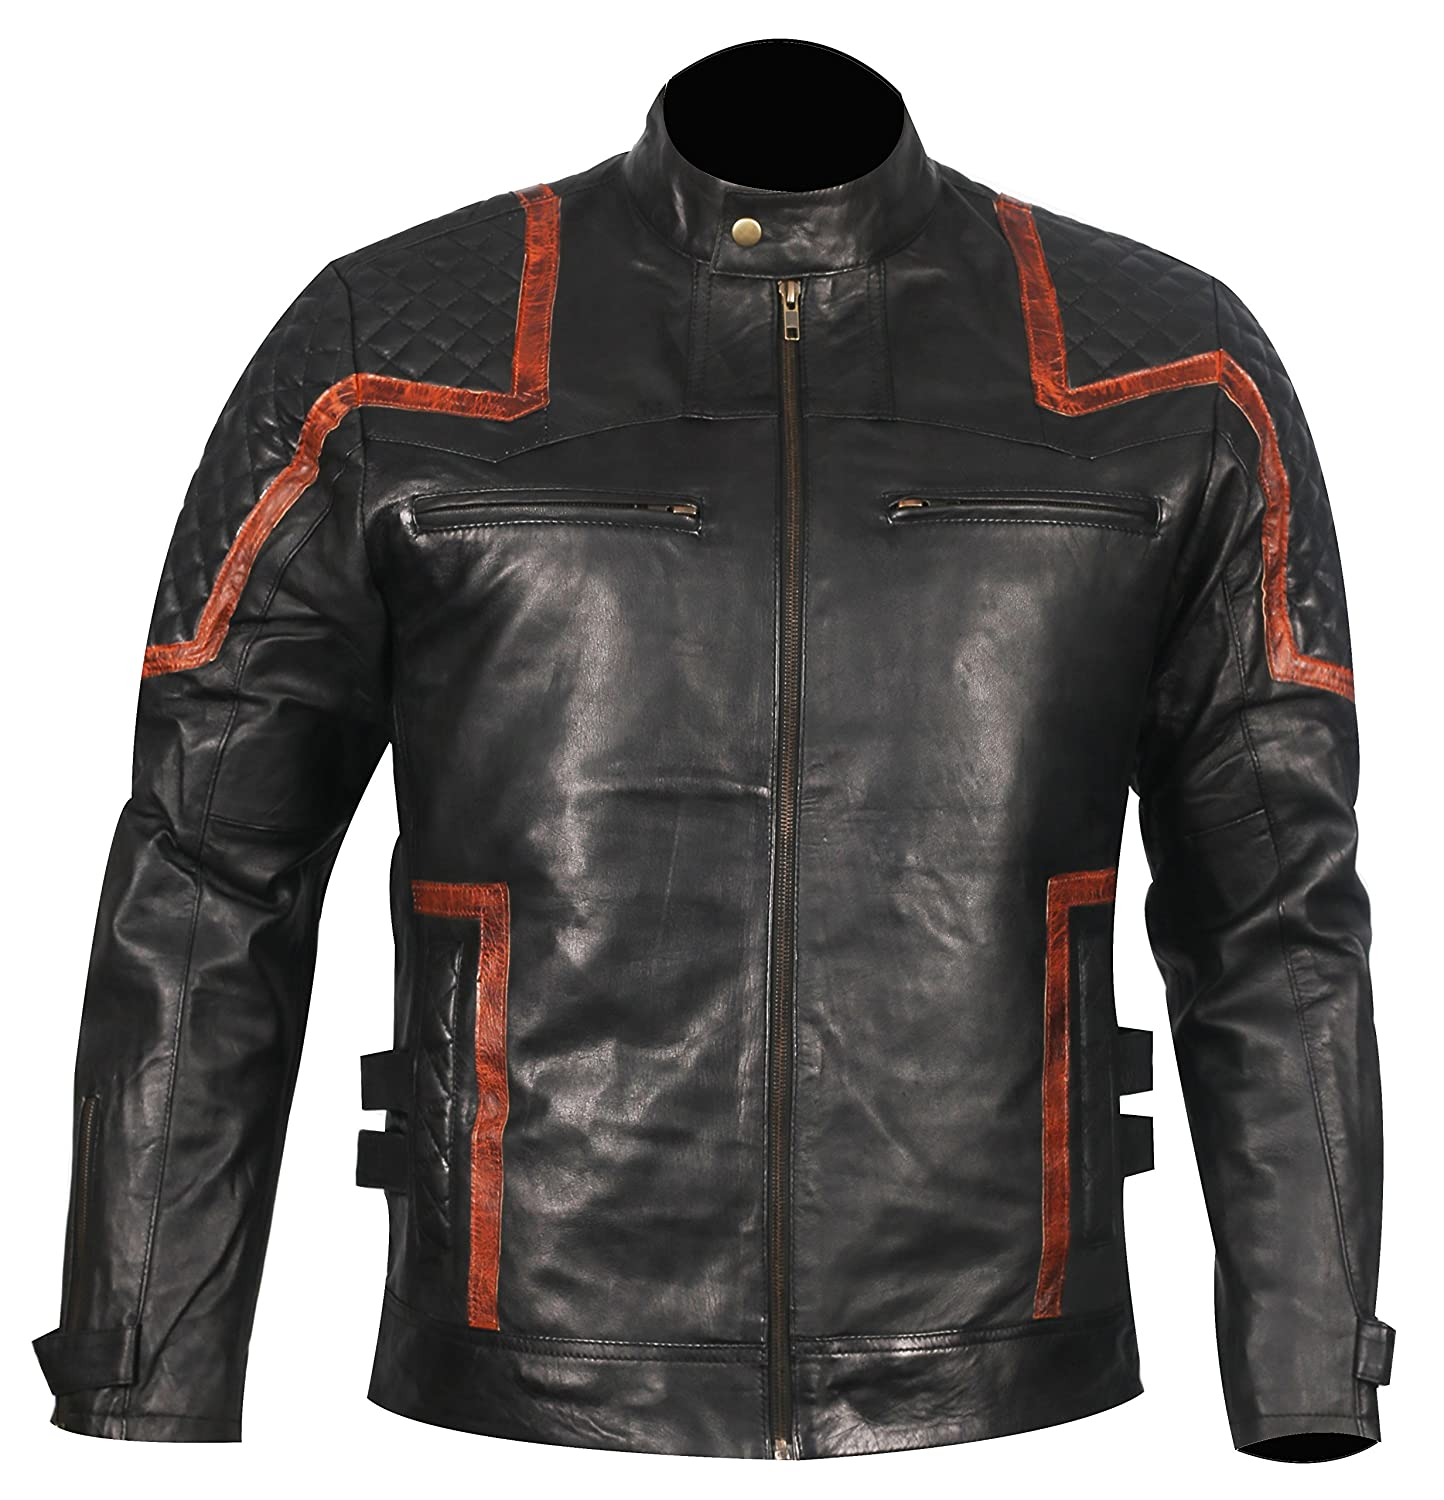 c3b5ee62 Black Men's Vintage Distressed Distressed Distressed Premium BUILD FOR  SPEED Motor Biker Mens Real Leather Jacket b7ae39